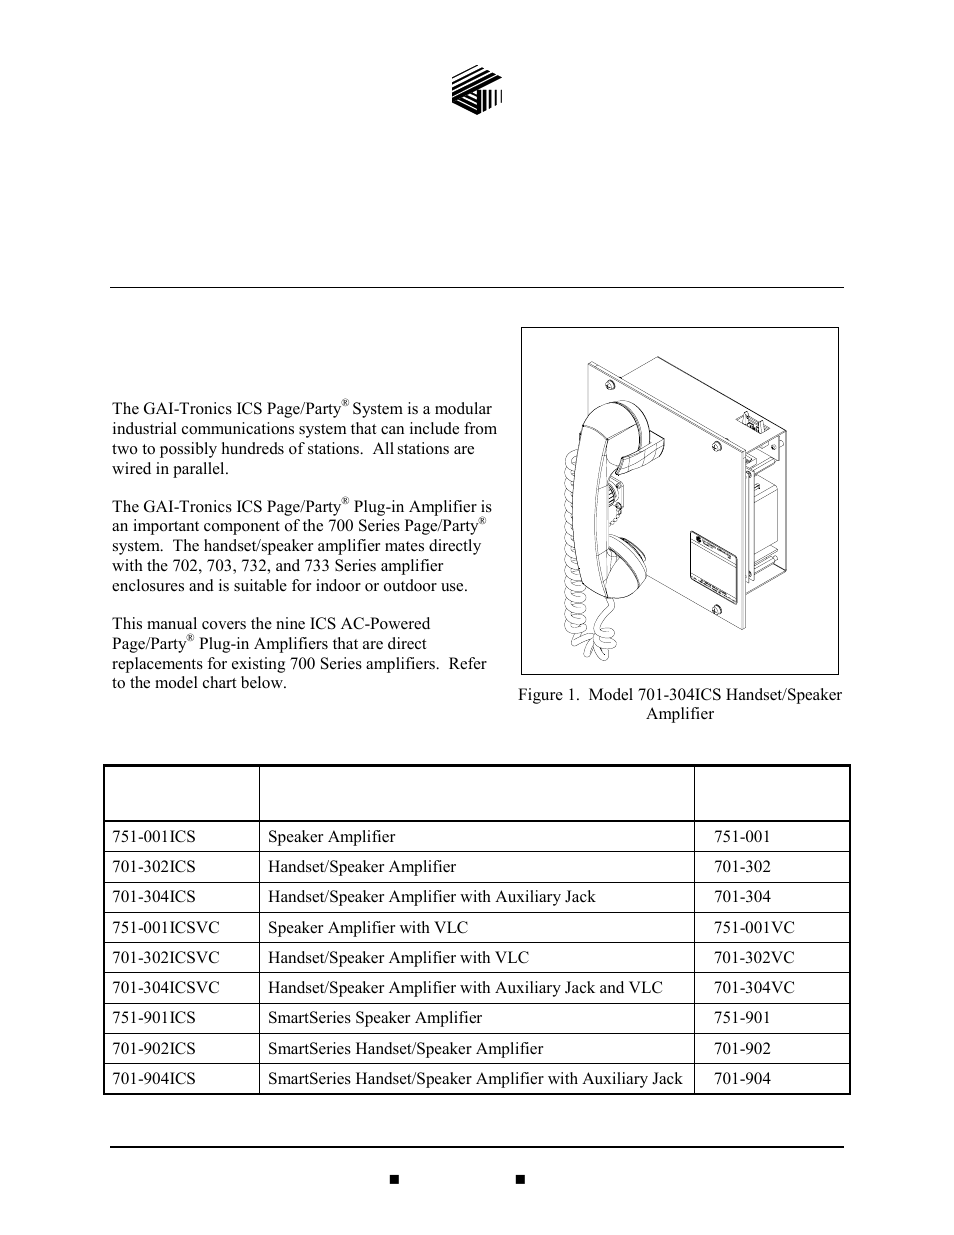 General information, Product overview, Model chart | GAI-Tronics 701